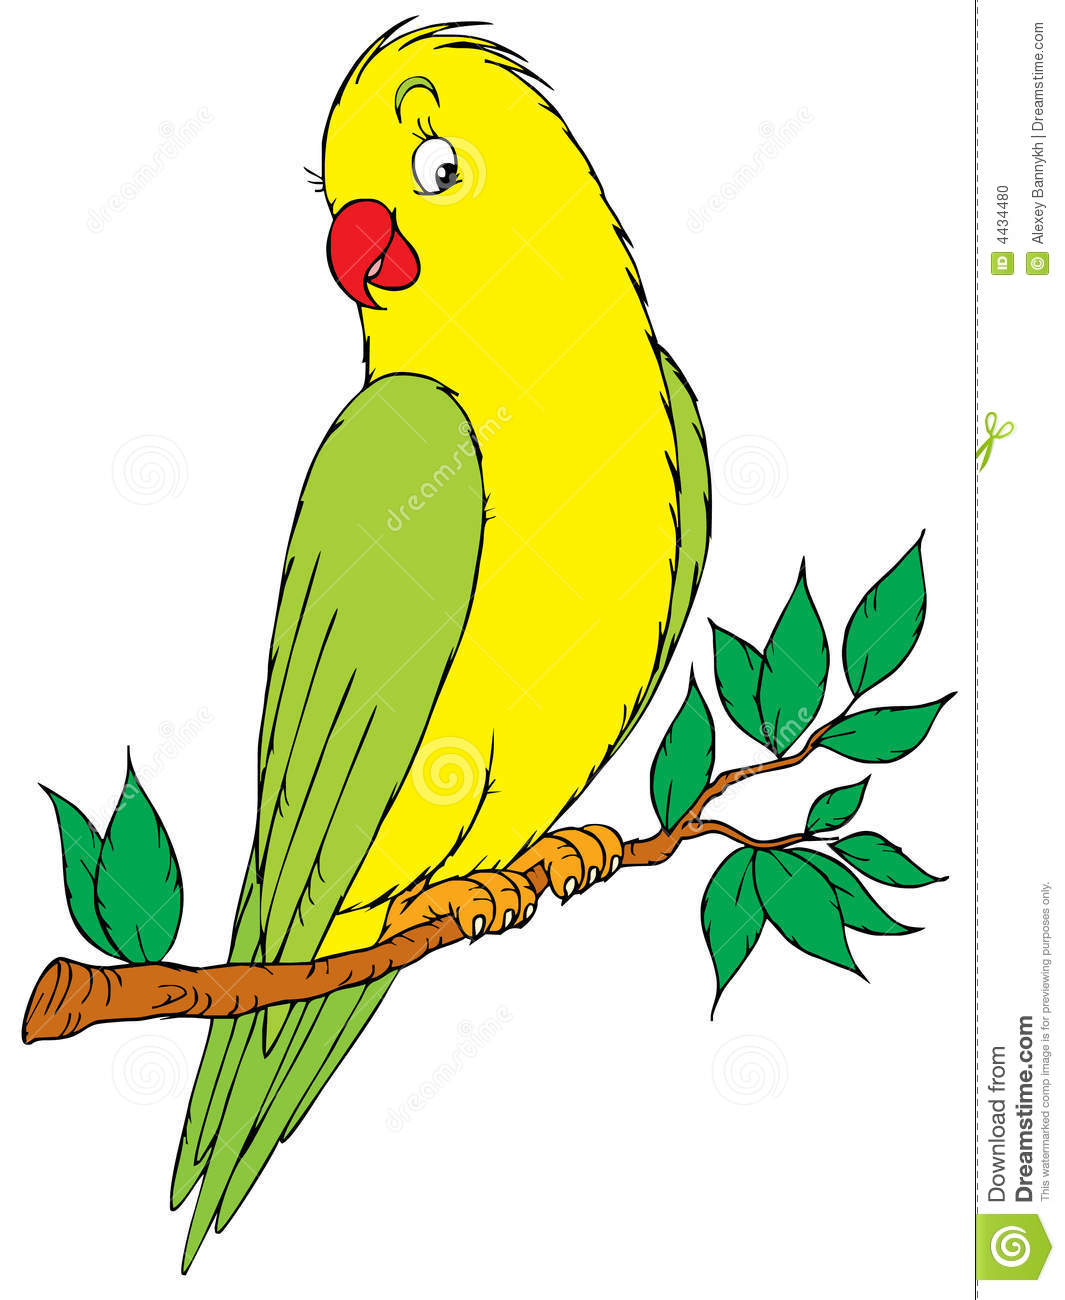 Parrot Black And White Clipart - Clipart Suggest